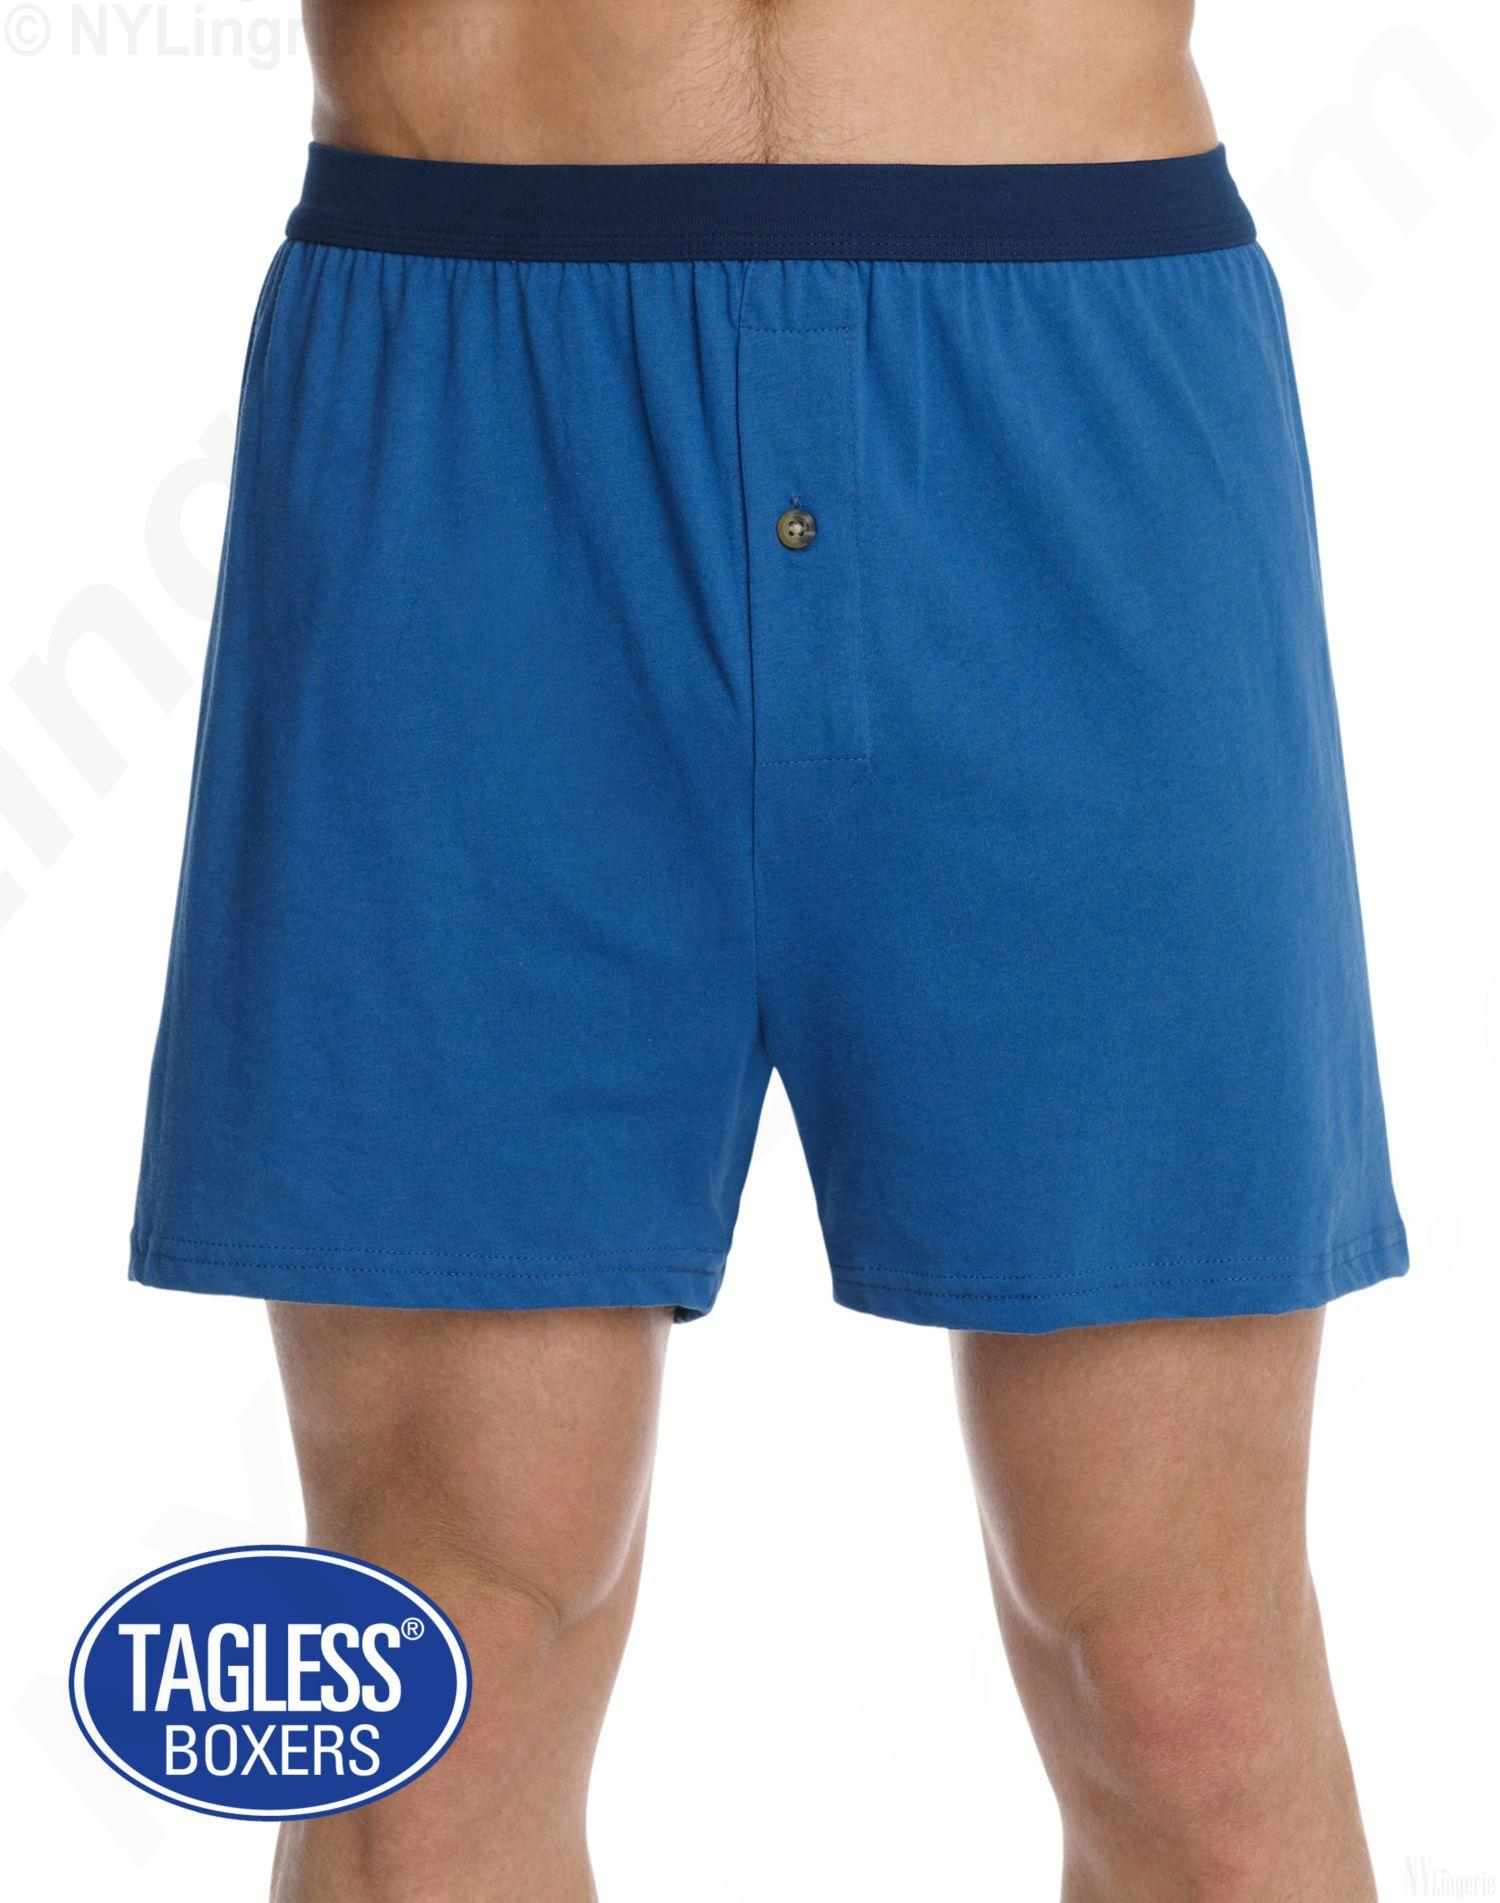 This cotton knit allows full movement in these boxers, and with their loose fit, Hilfiger boxer shorts make for a great lounge short. Mens boxers are a men's underwear silhouette classic. In fact, many women have now started buying and borrowing boxer shorts to wear as casual wear too.